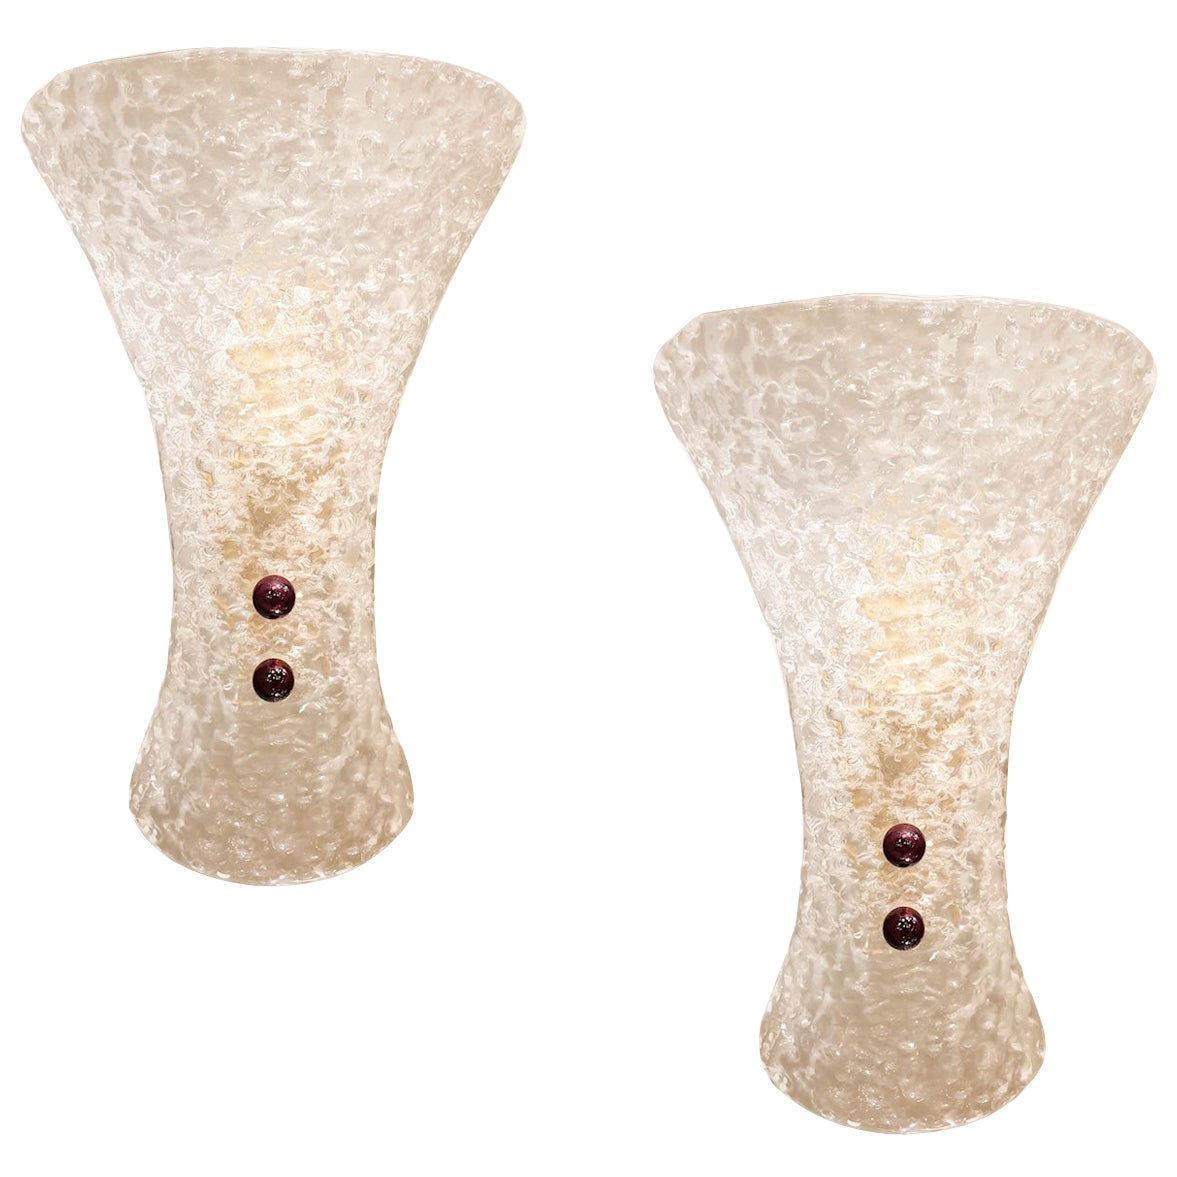 Murano Clear Glass & Brass Mid-Century Modern Sconces Barovier style Italy 1970s